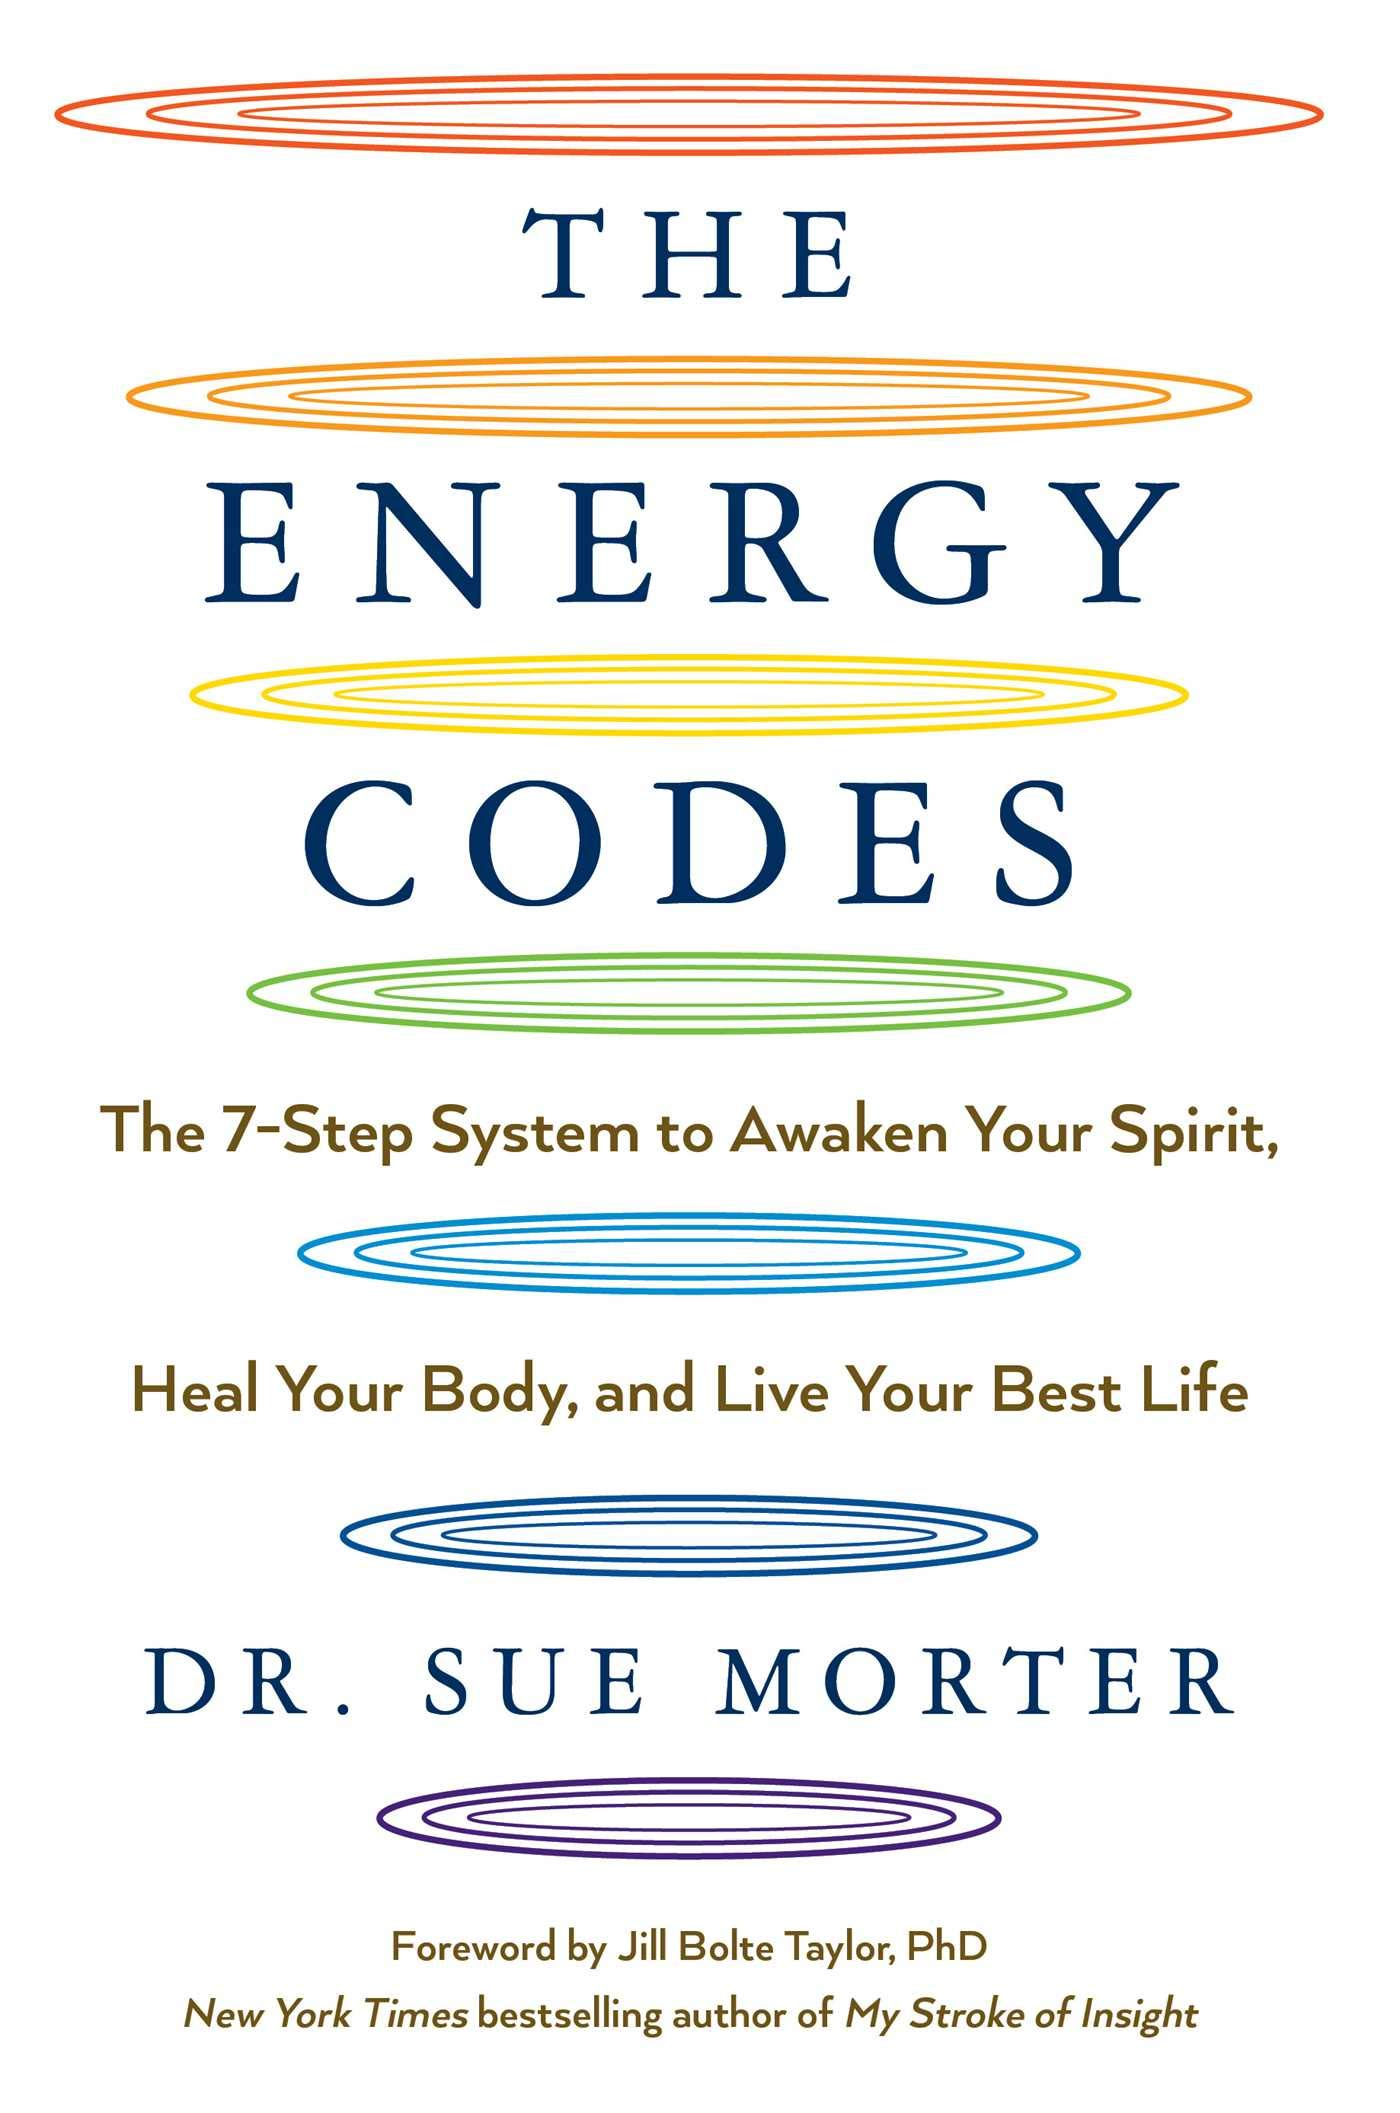 Sue Morter – The Energy Codes Genre: